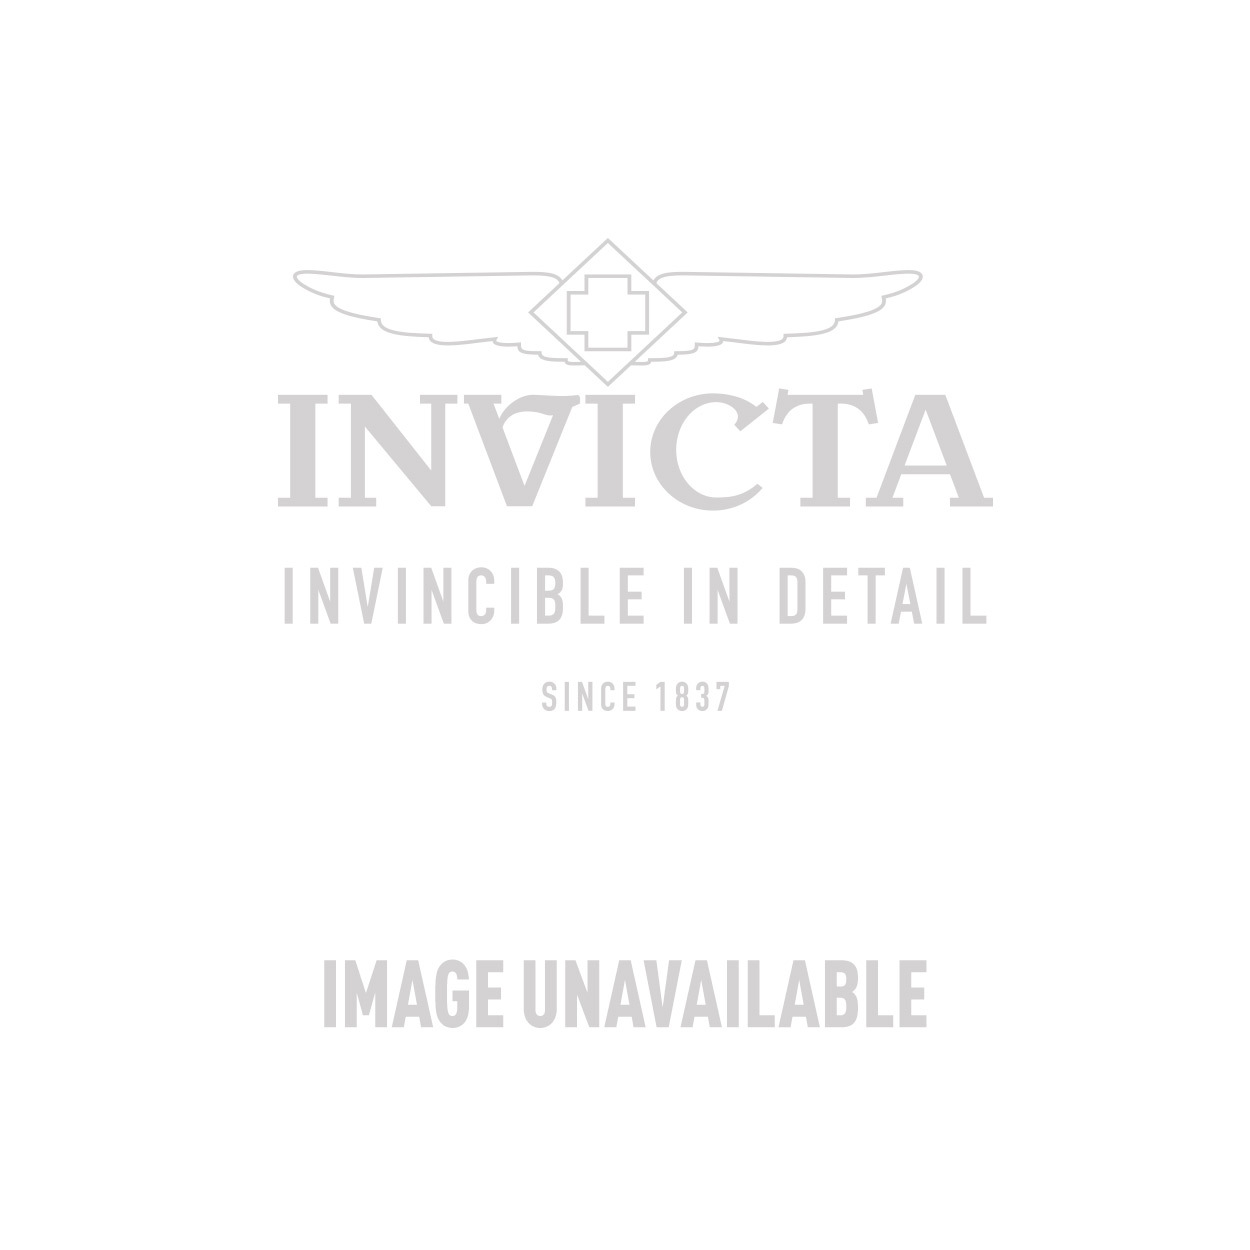 Invicta Bolt  Quartz Watch - Gunmetal, Stainless Steel case with Black tone Silicone band - Model 15783